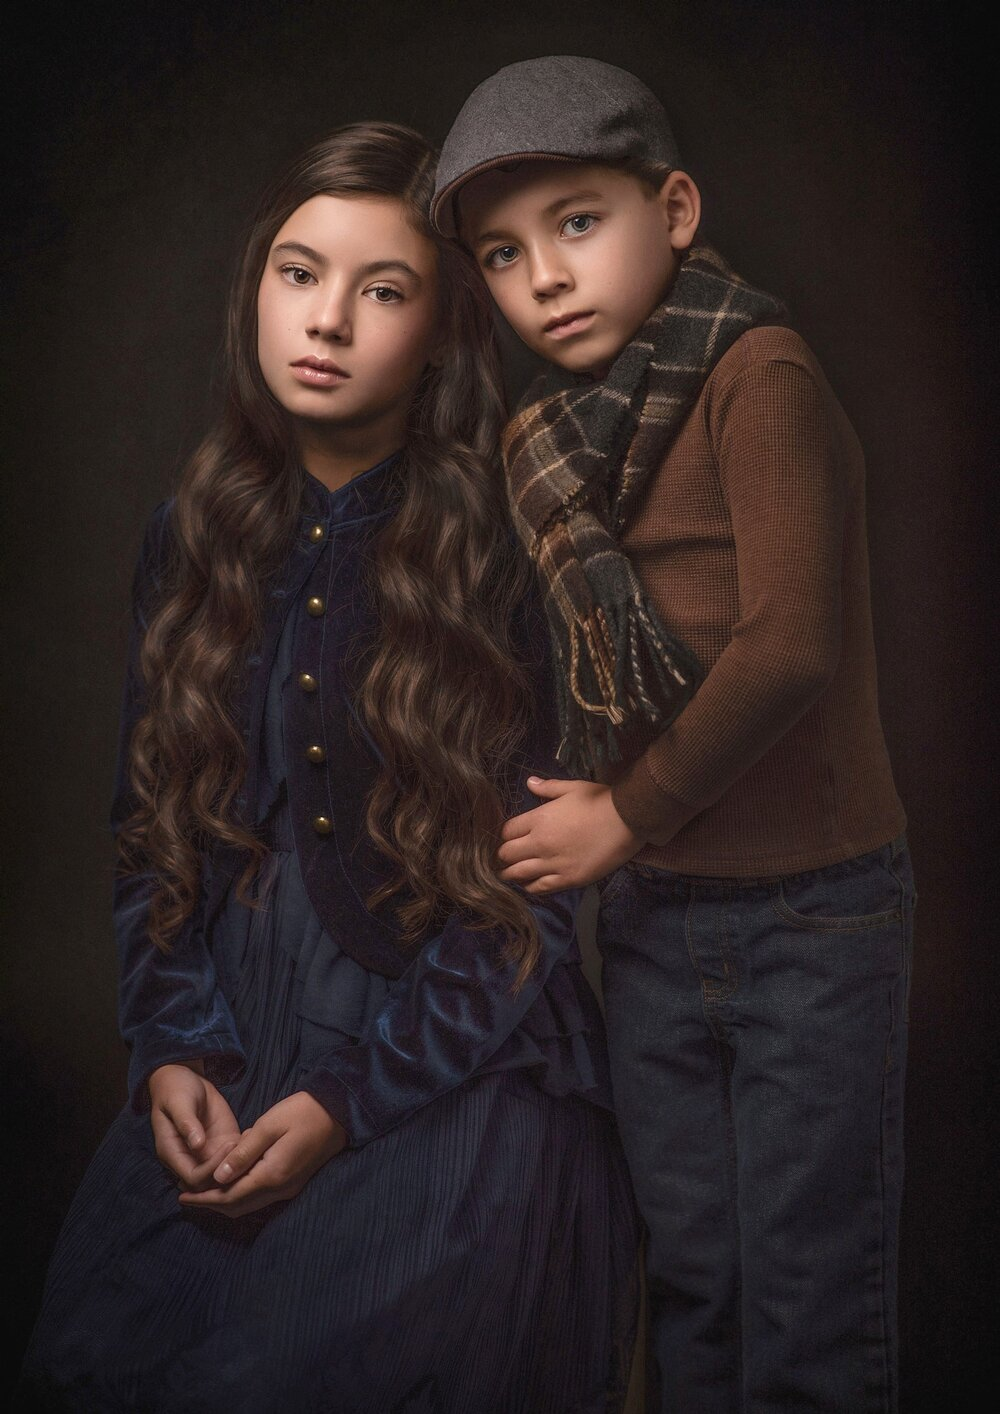 barbara_macferrin_photography_boulder_colorado_80303_fine_art_children_siblings_boy_girl_vintage.jpg